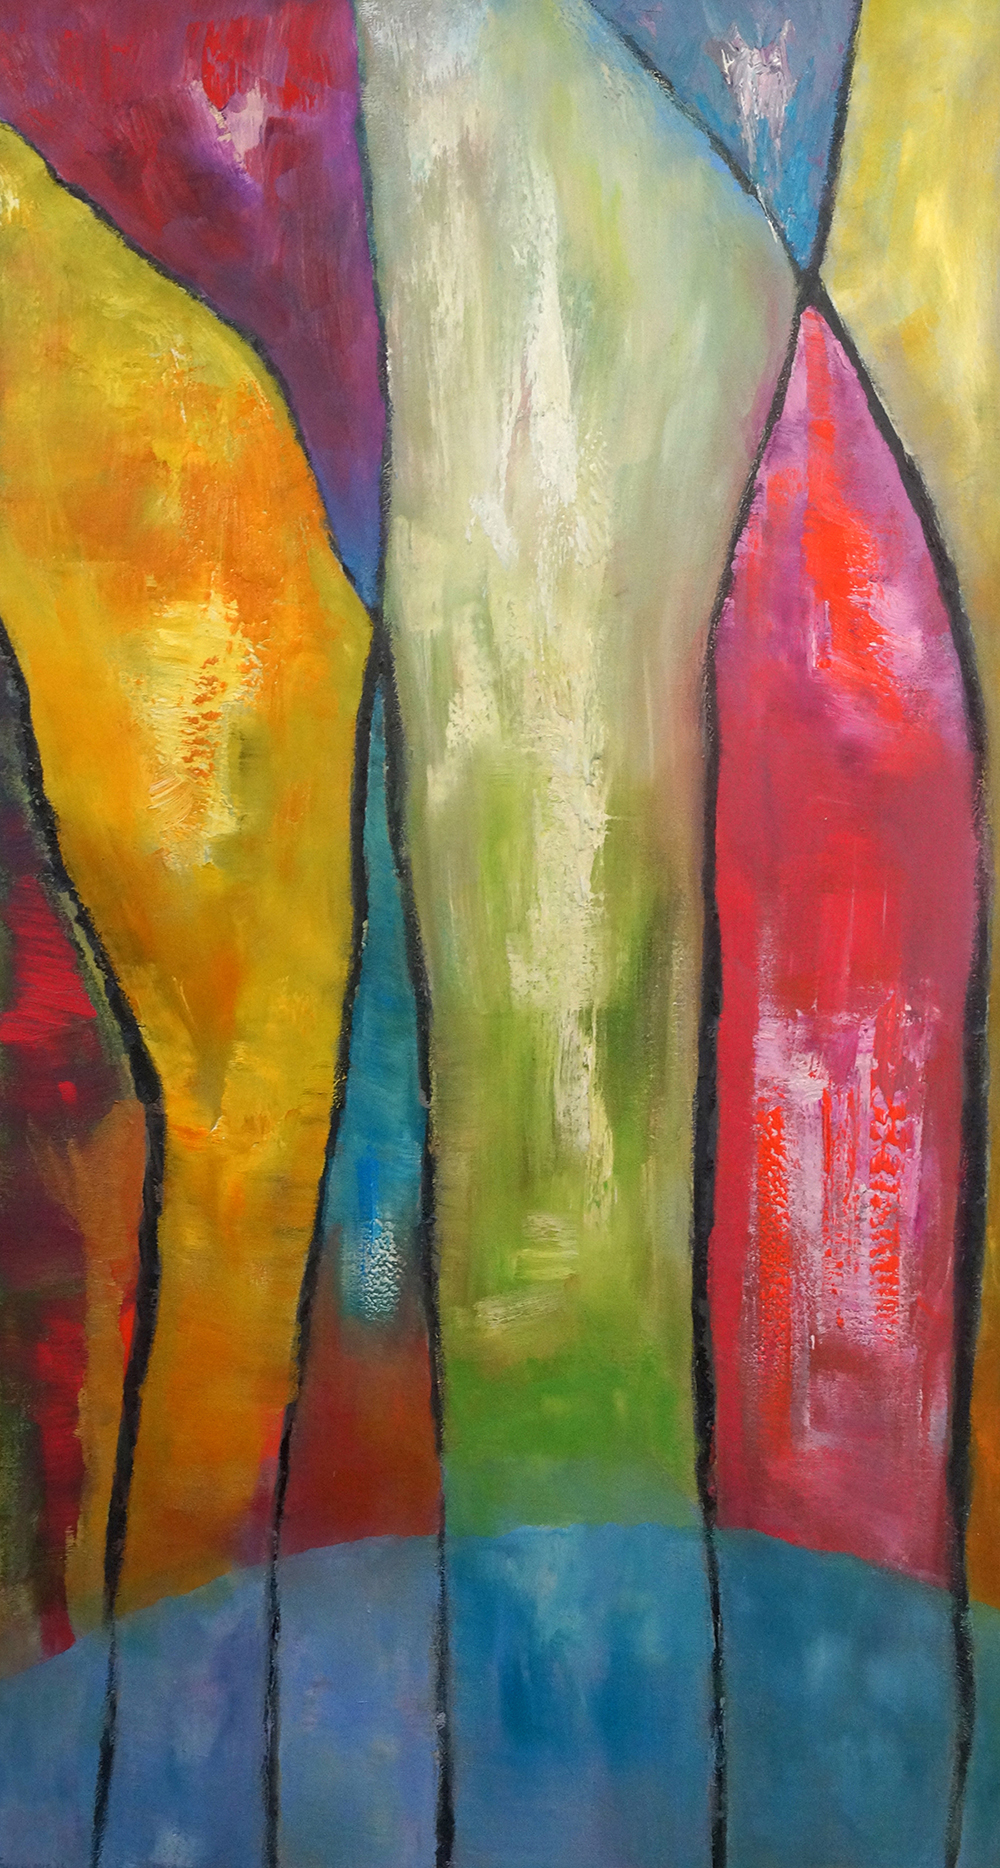 Light of the Land - Oil on Canvas - 132cm x 71cm